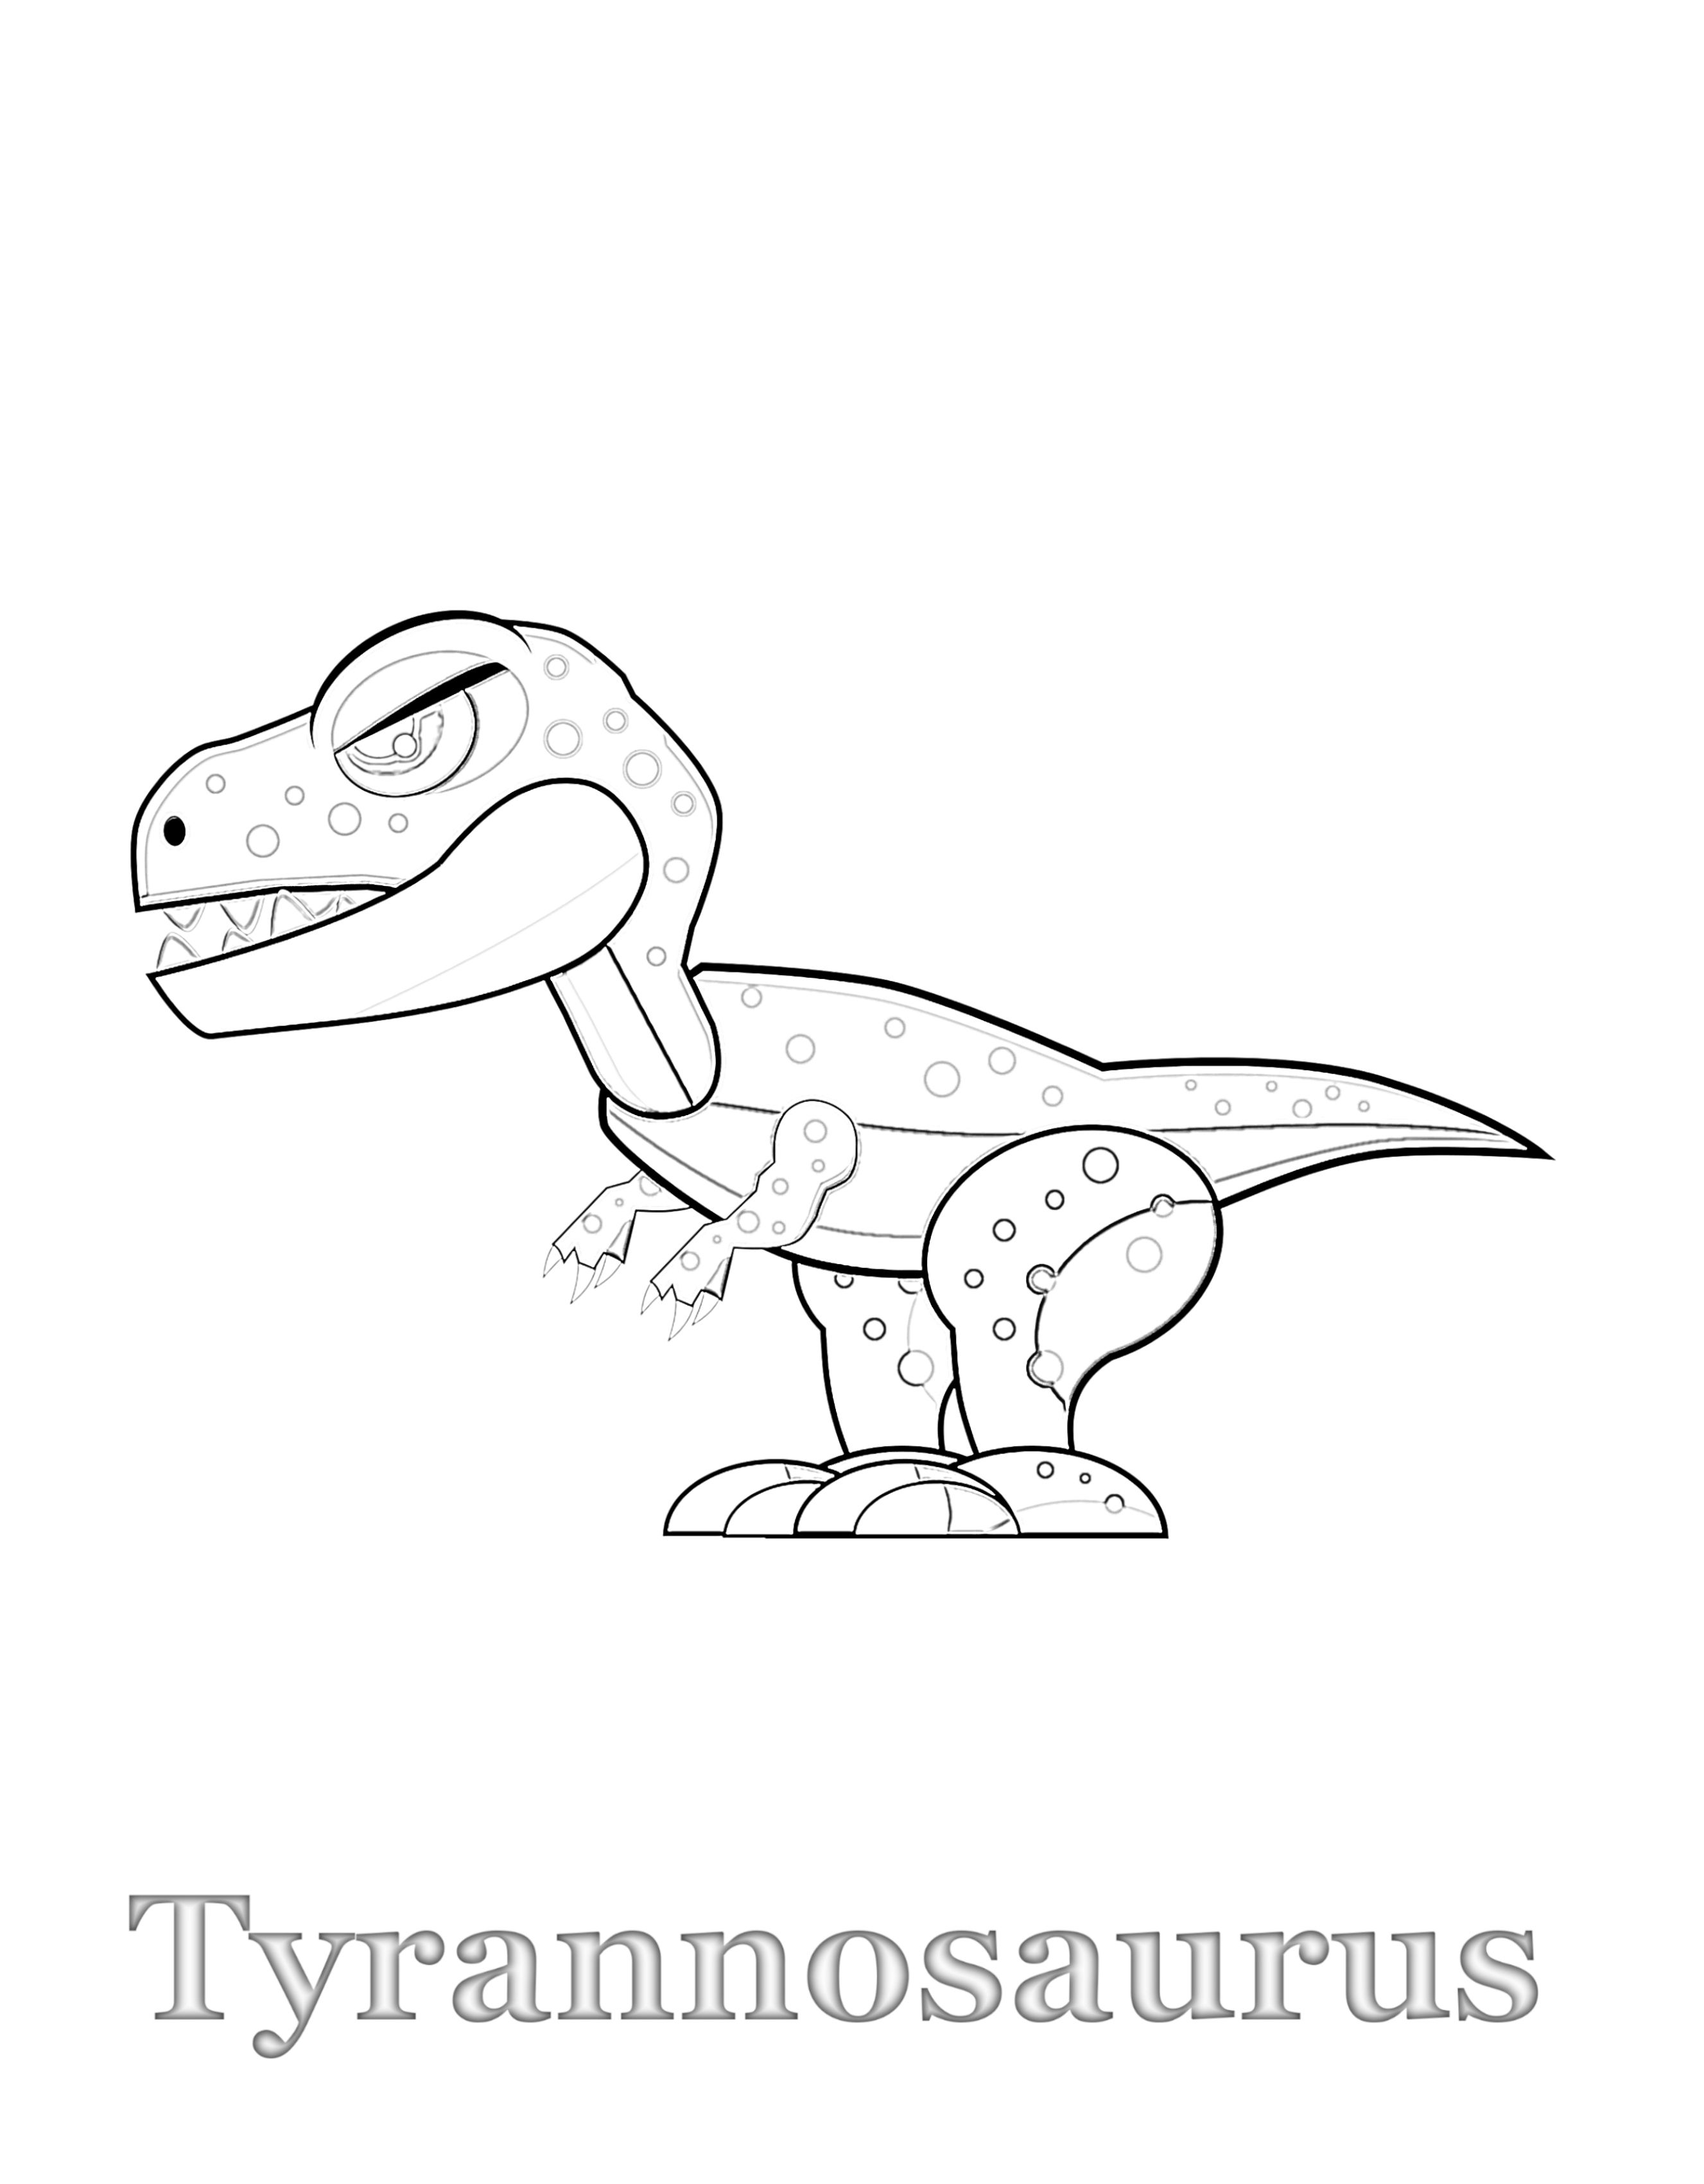 This Is A Page From The Dinosaurs Fun Activity Book For